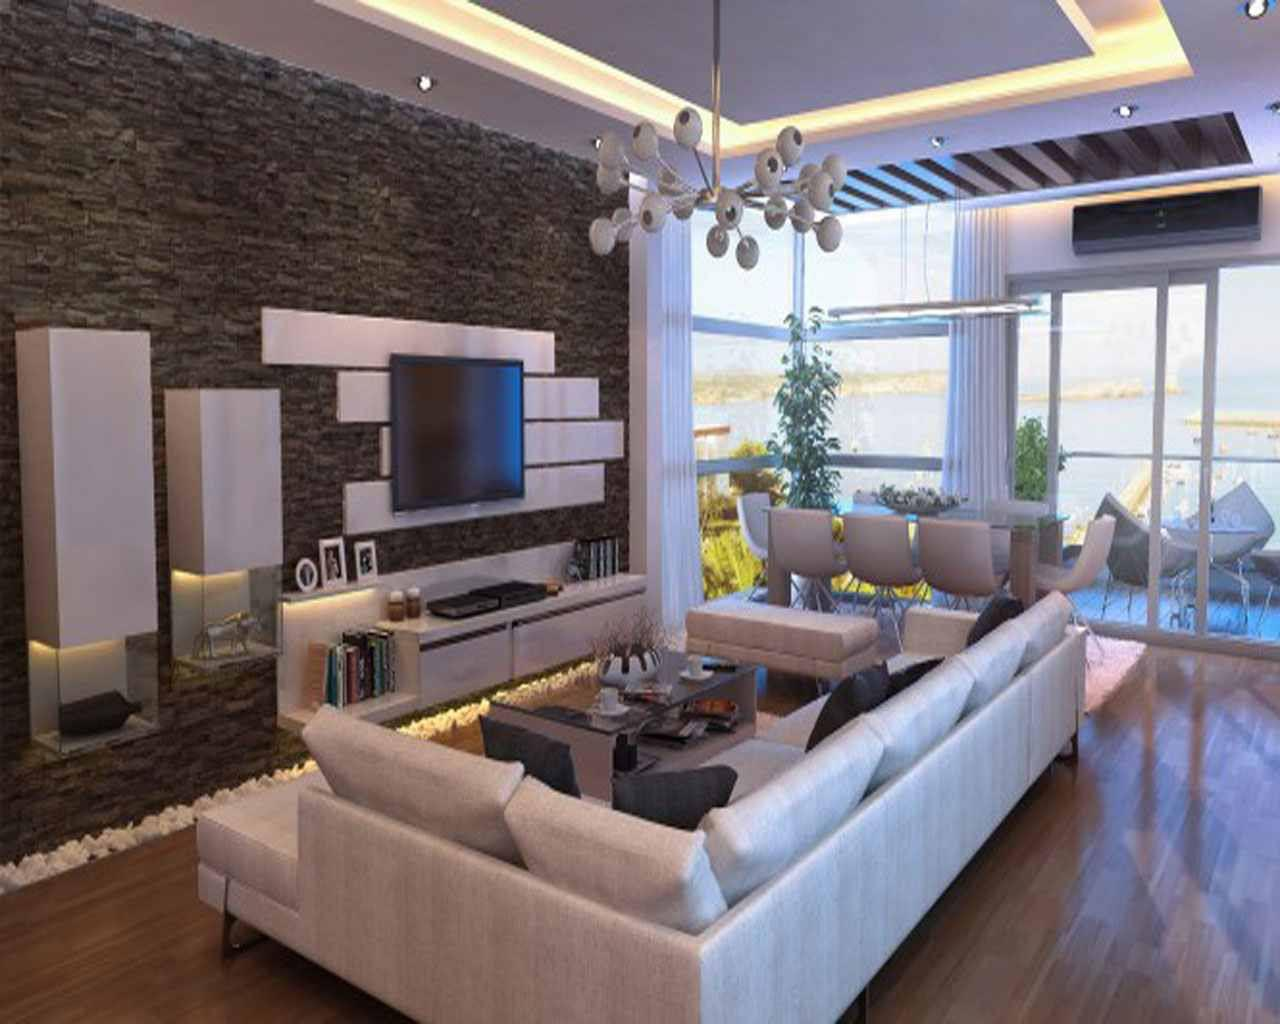 dwell of decor if you looking for tv units to add in your living